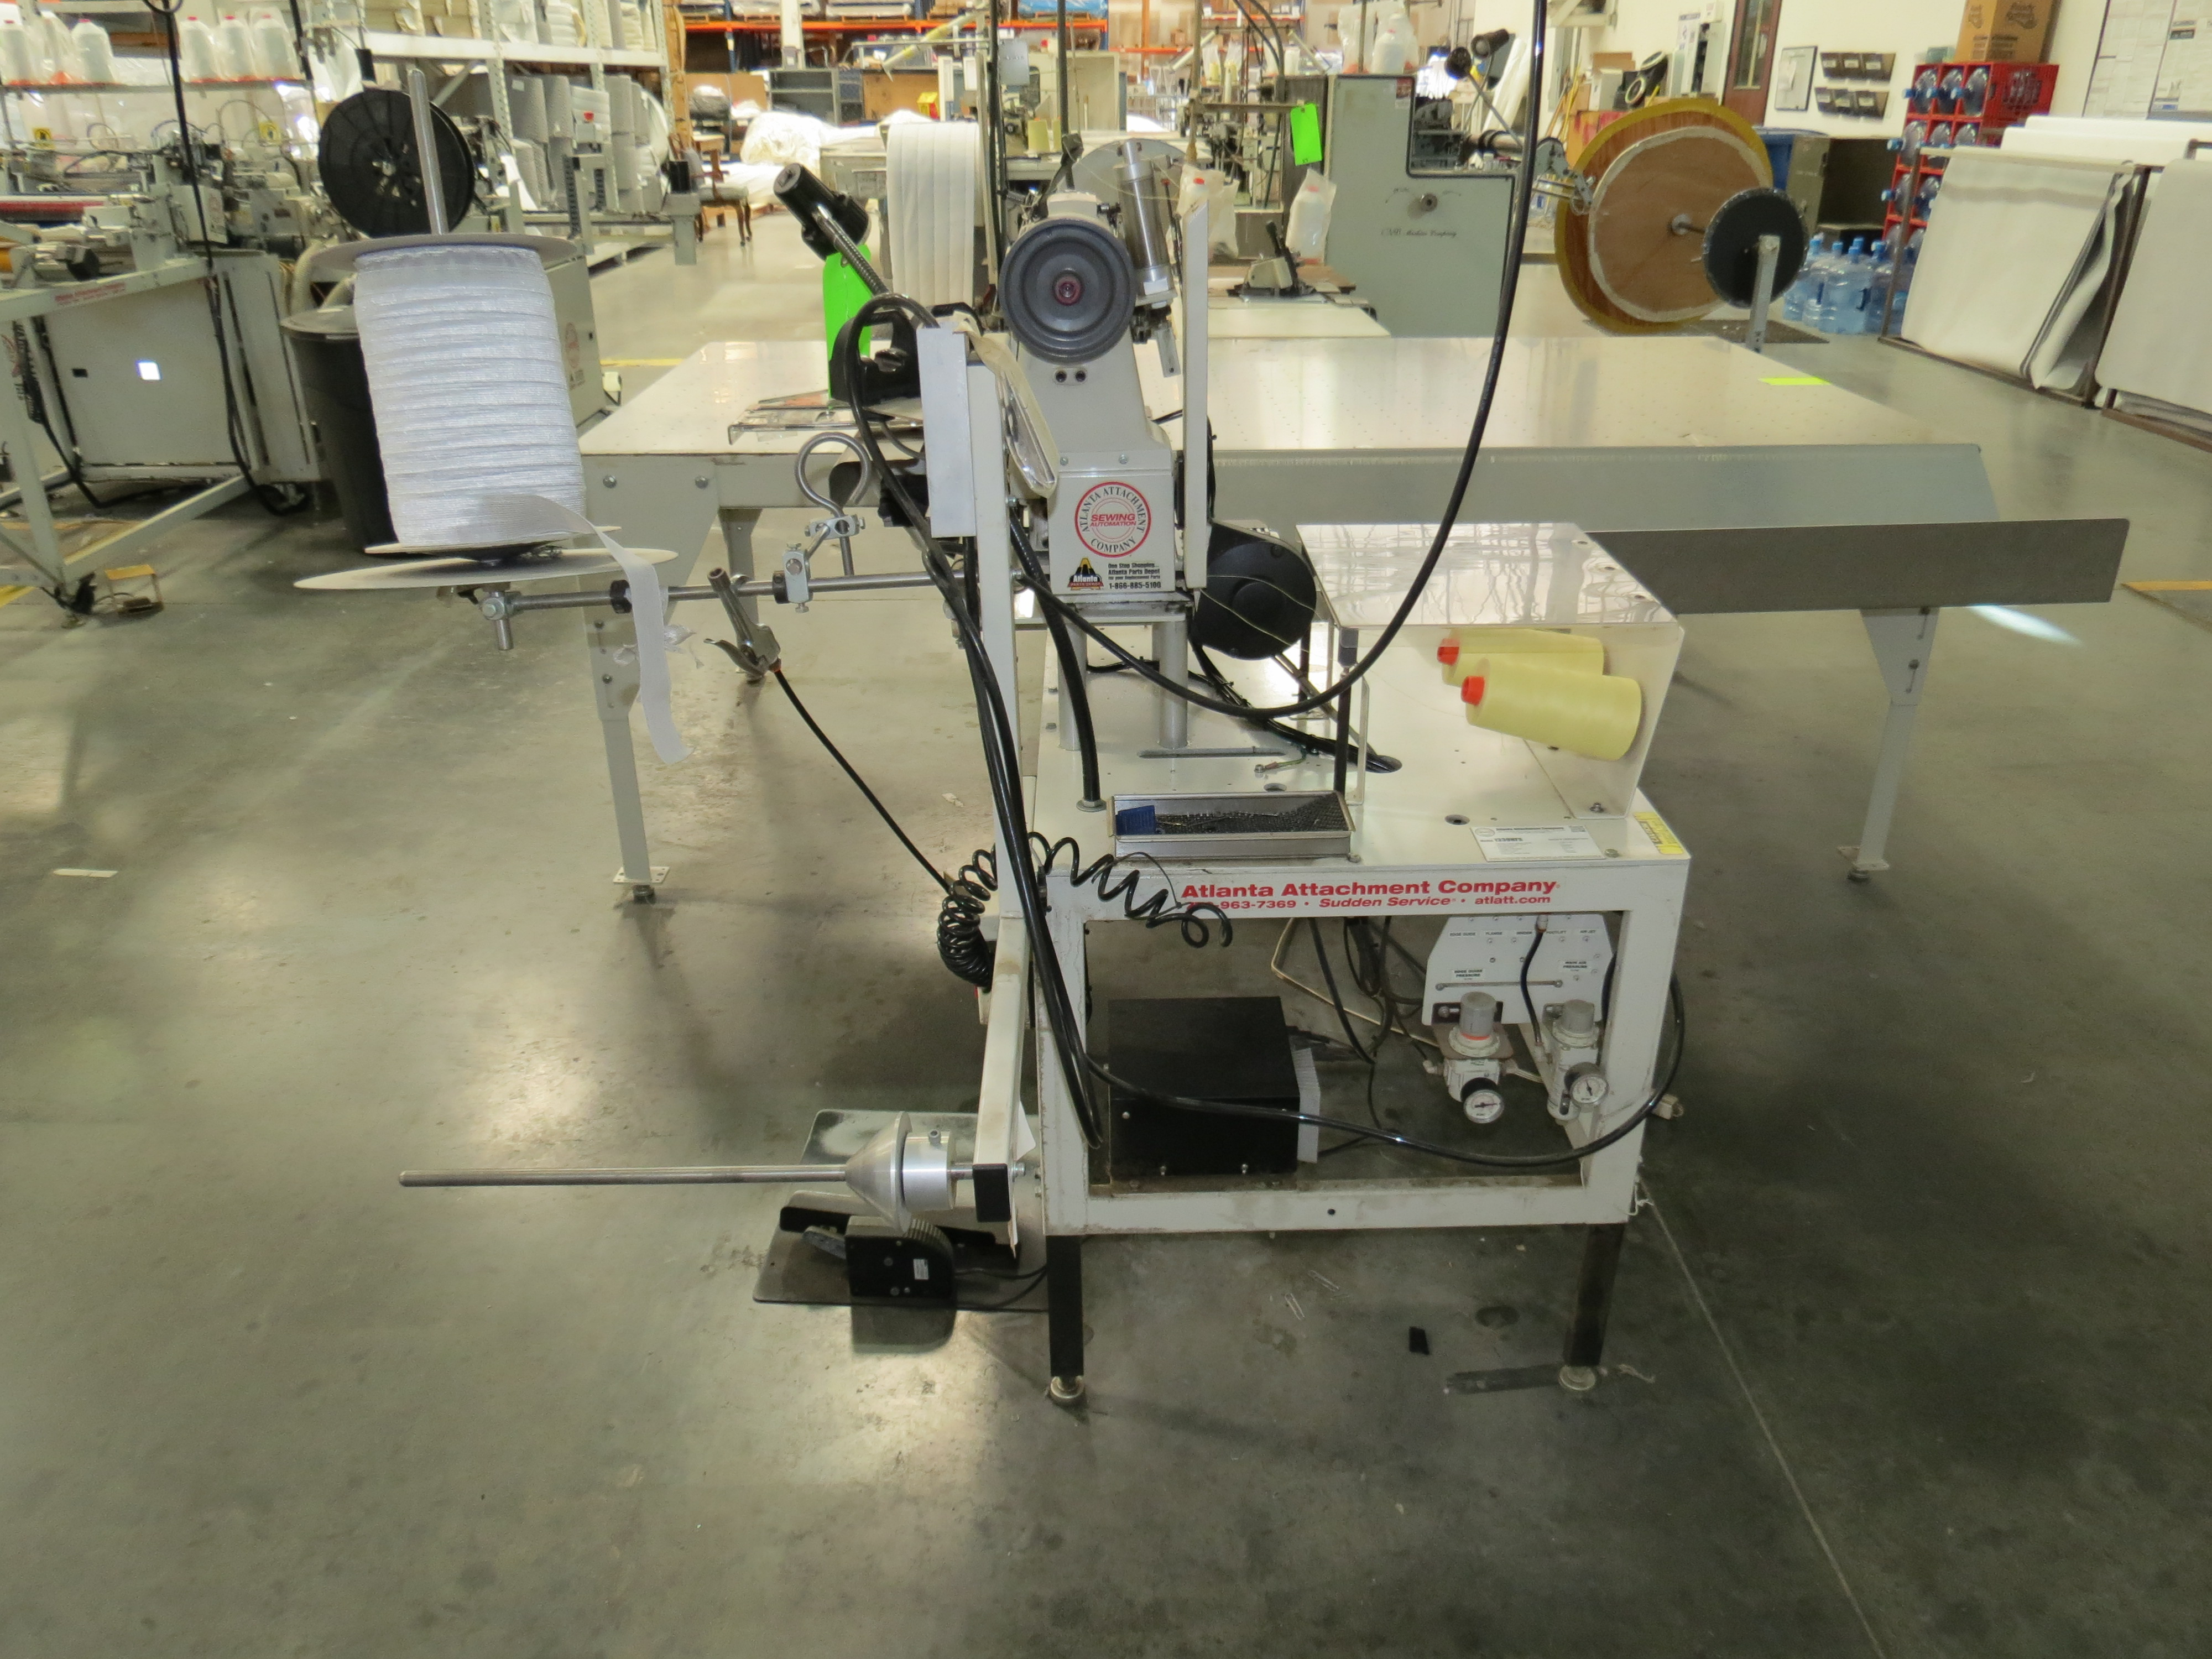 Atlanta Attachment Company 1339HFSHalf-Cap Sewing Machine, SN:209226071617, 220V, AAC 300UX6, ( - Image 3 of 5